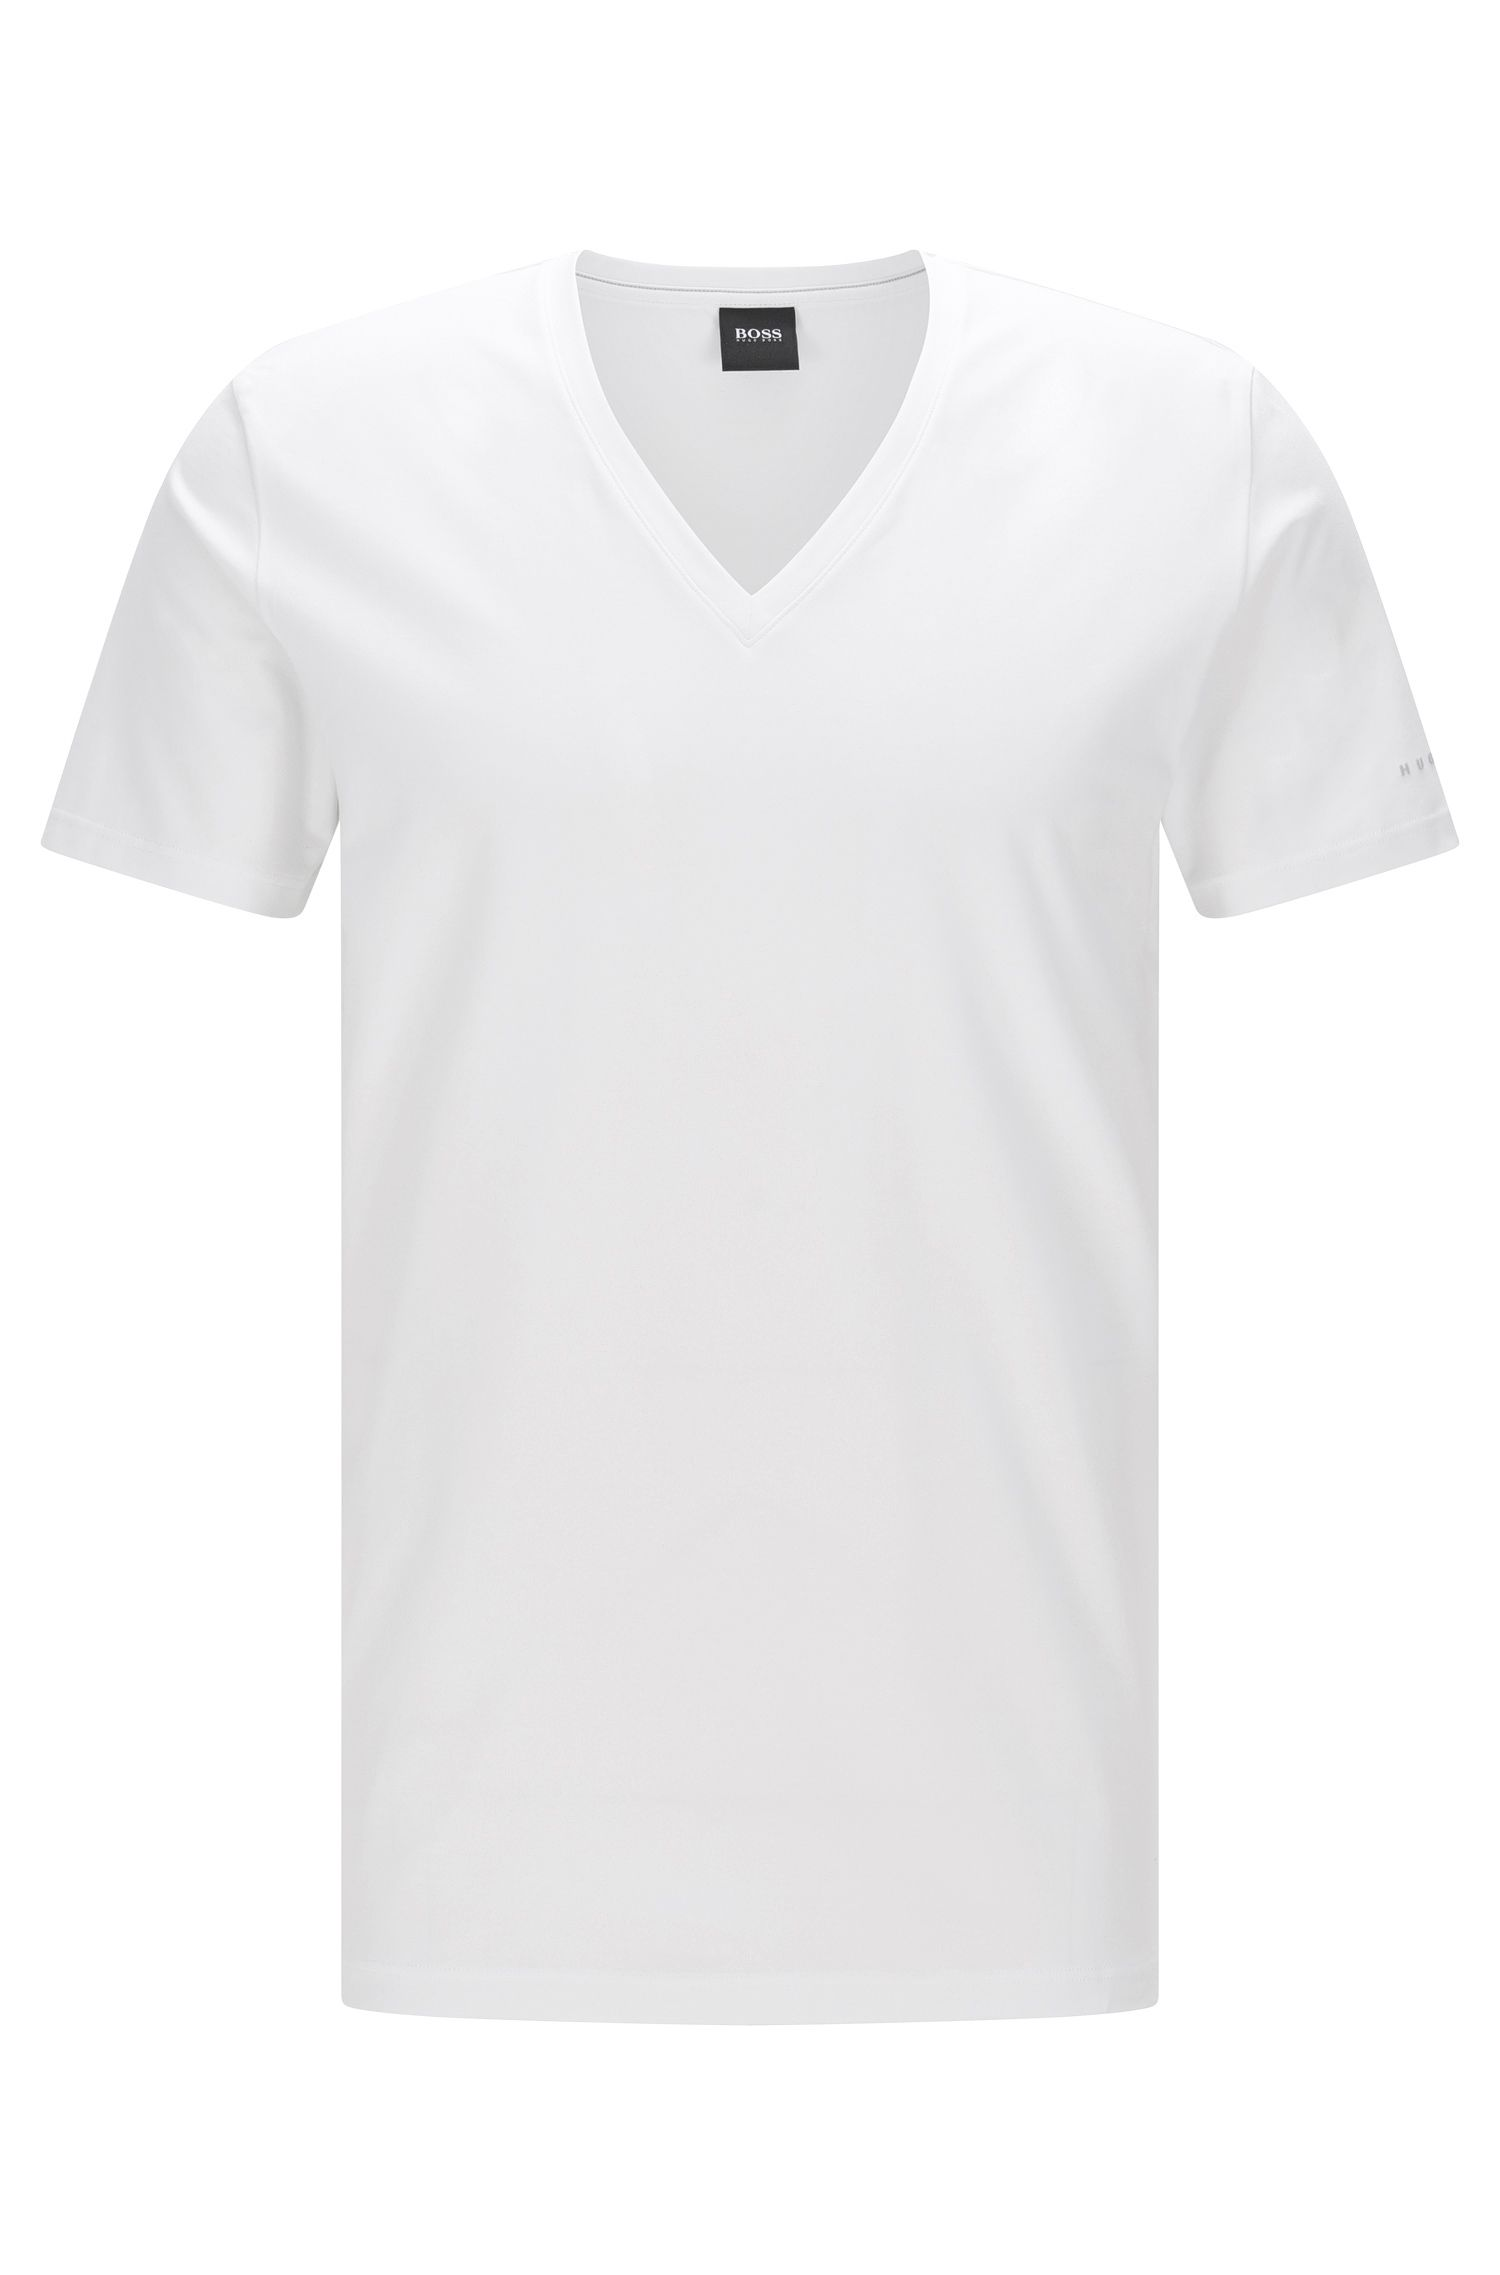 T-shirt Travel Line en coton mélangé extensible et respirant : « T-Shirt VN Cotton+ »